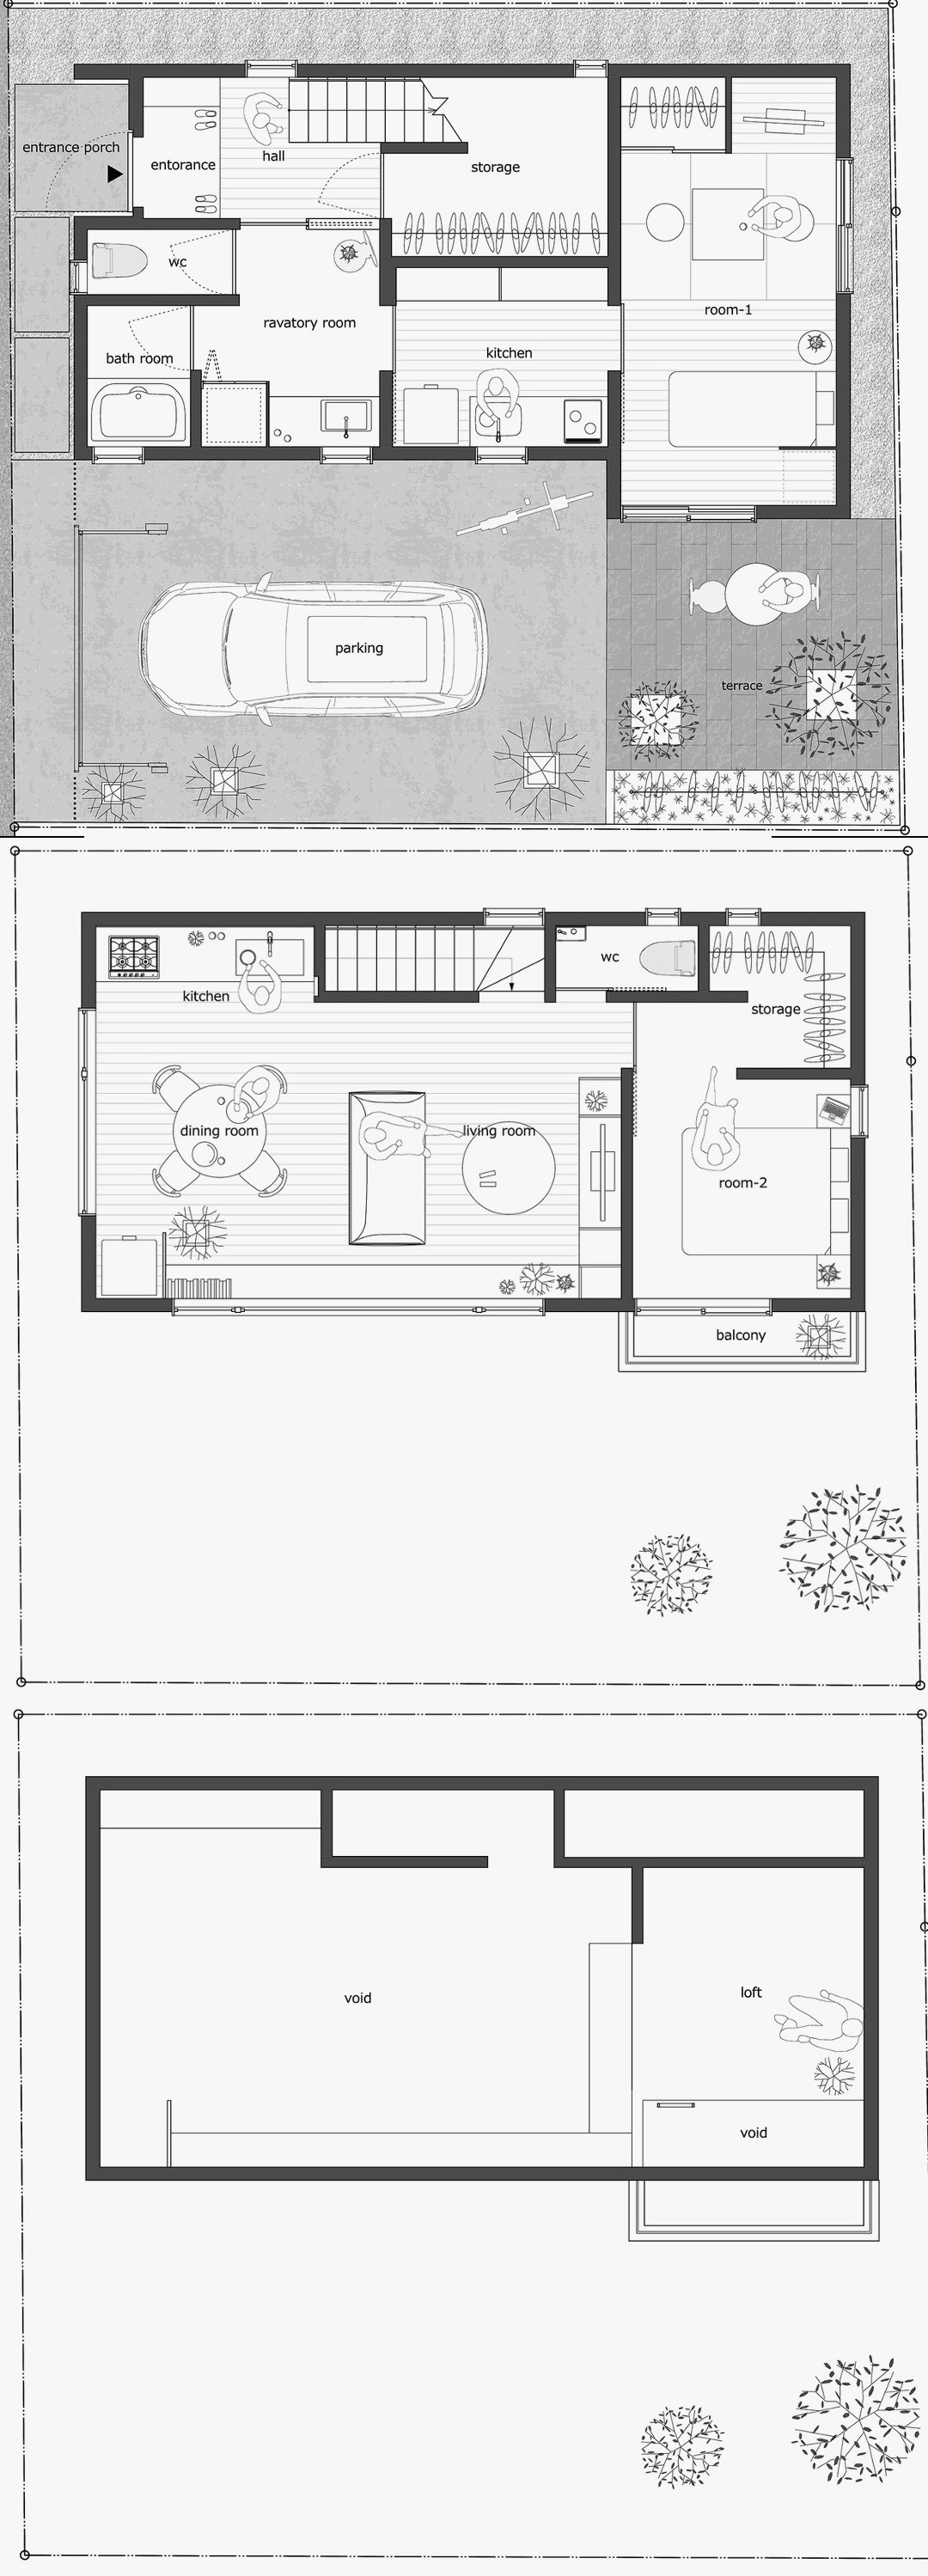 small japanese house floor plans lovely a small multi generational home in japan by kasa architects of small japanese house floor plans